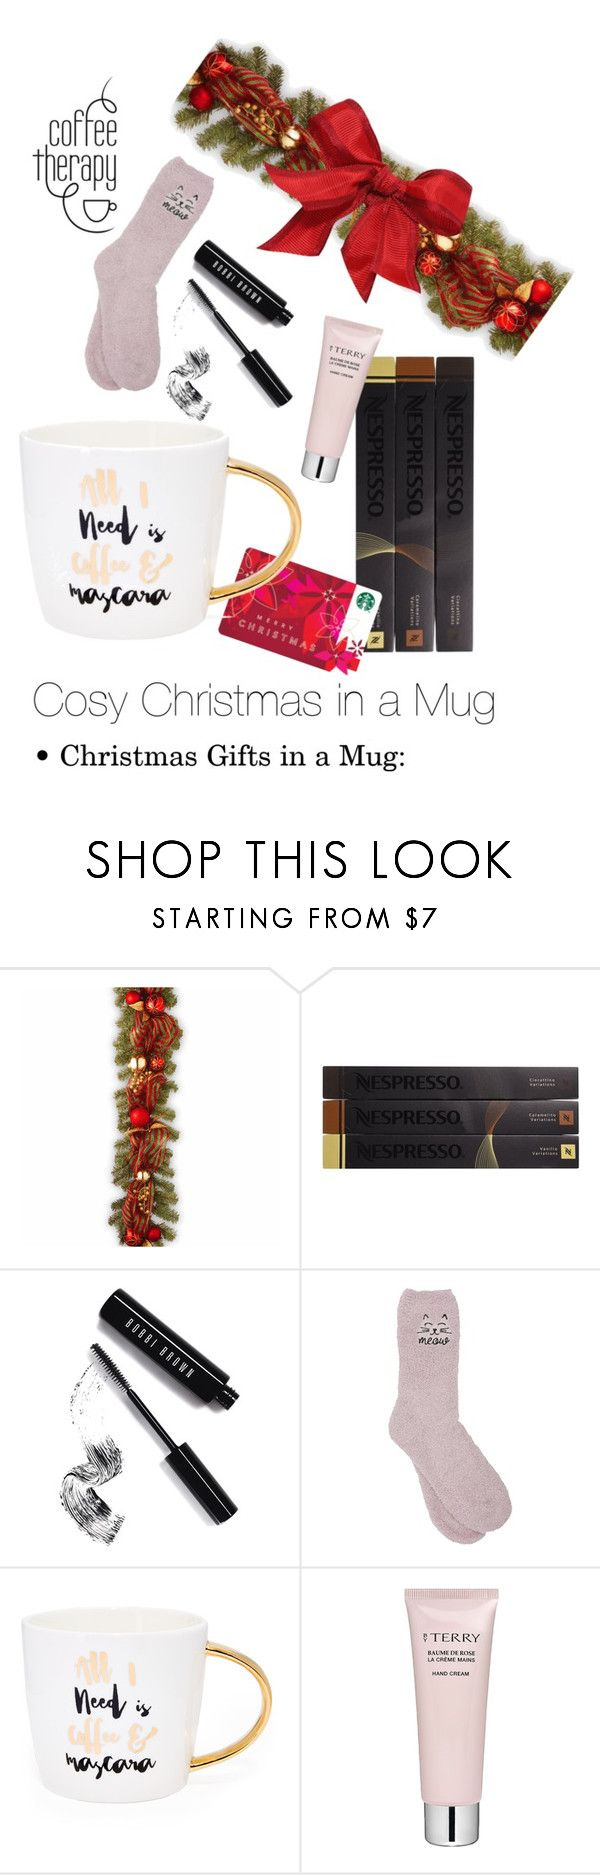 """""""Cosy Christmas in a Mug - Christmas Gift Ideas #1"""" by enk98 on Polyvore featuring interior, interiors, interior design, home, home decor, interior decorating, National Tree Company, Nespresso, Bobbi Brown Cosmetics and M&Co"""